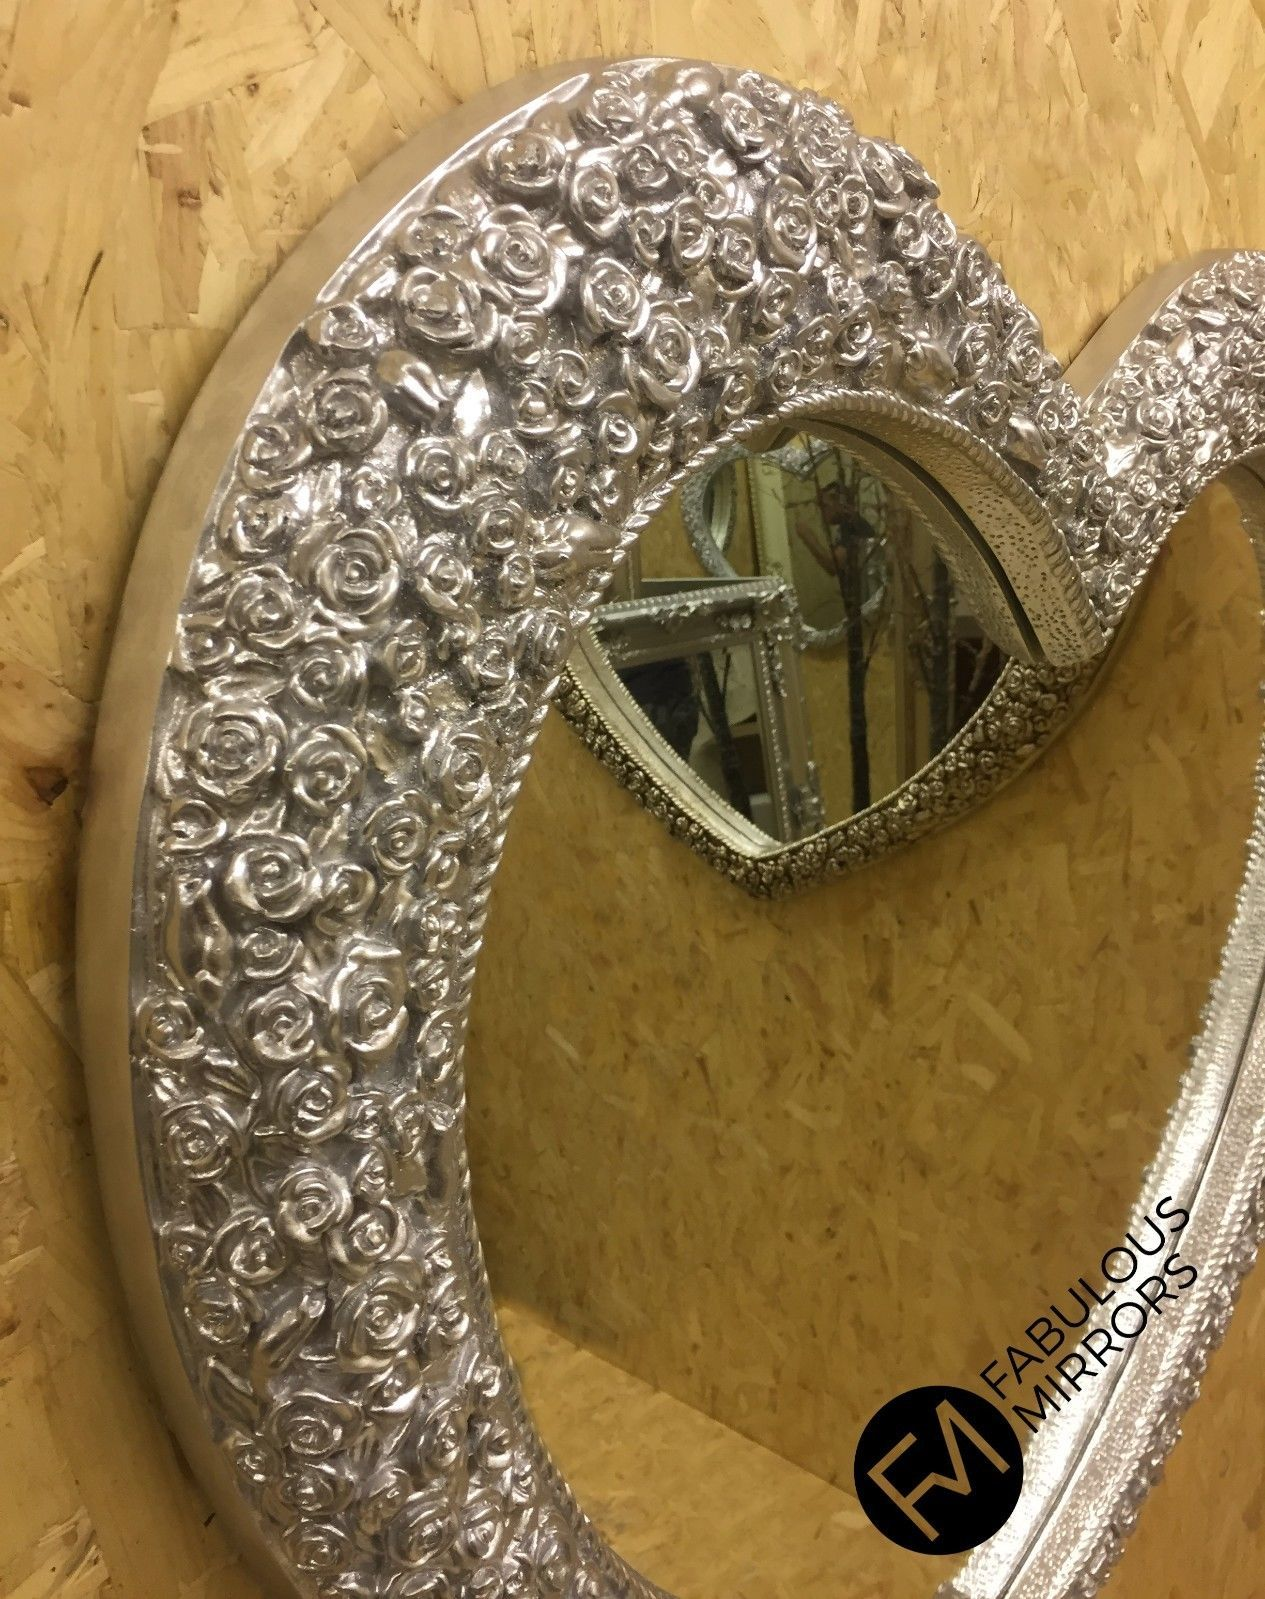 X Large Bright Silver Chrome Heart Mirror Stunning Ornate